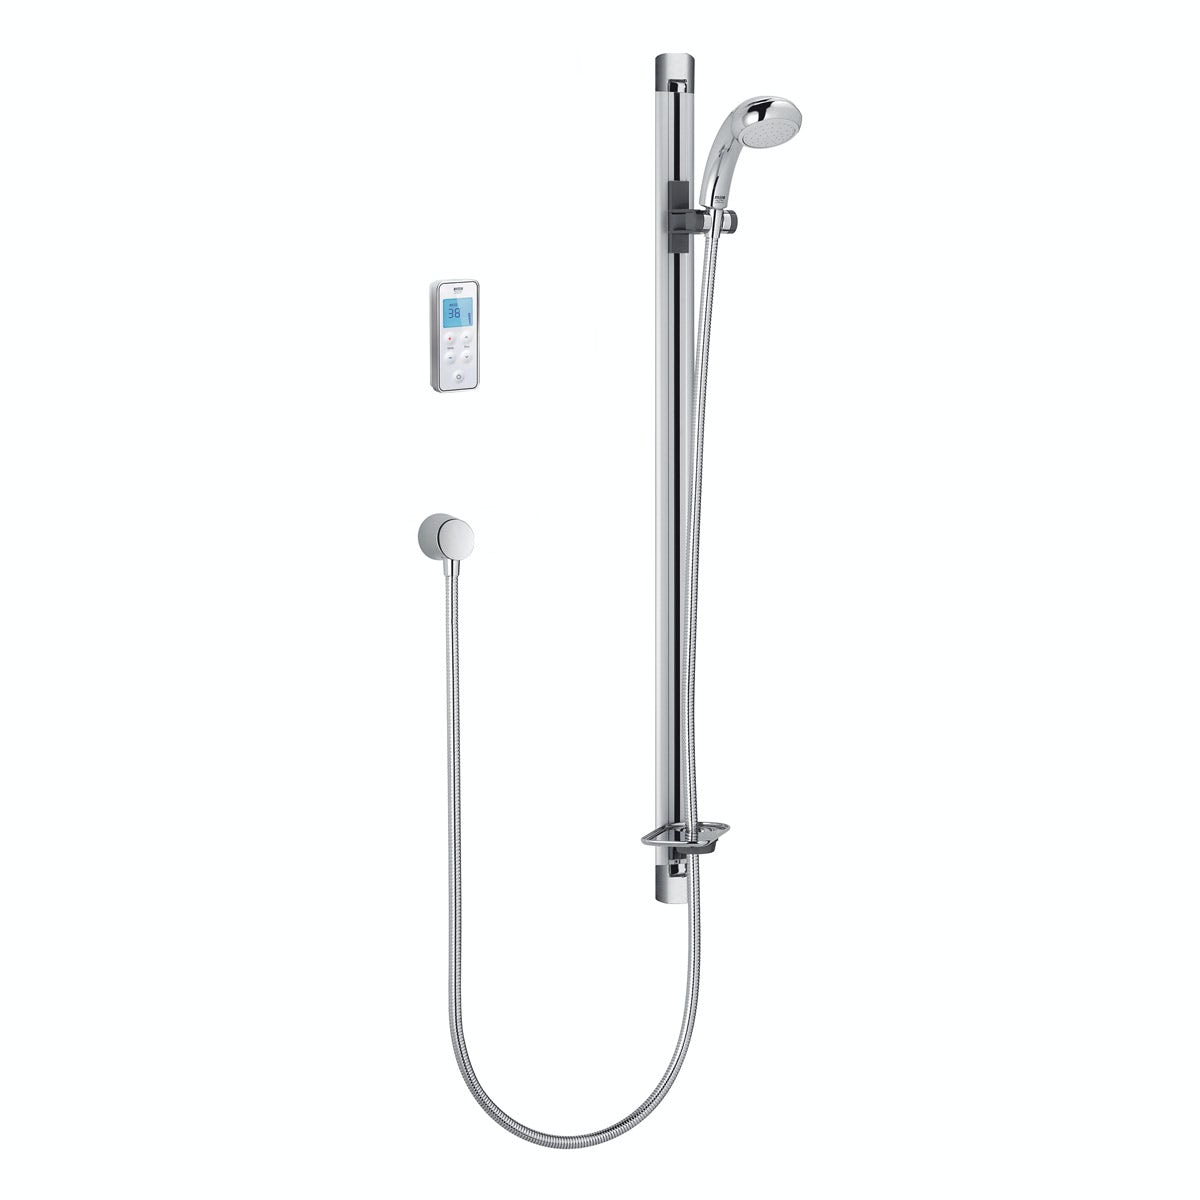 Mira Vision Flex rear fed digital shower standard